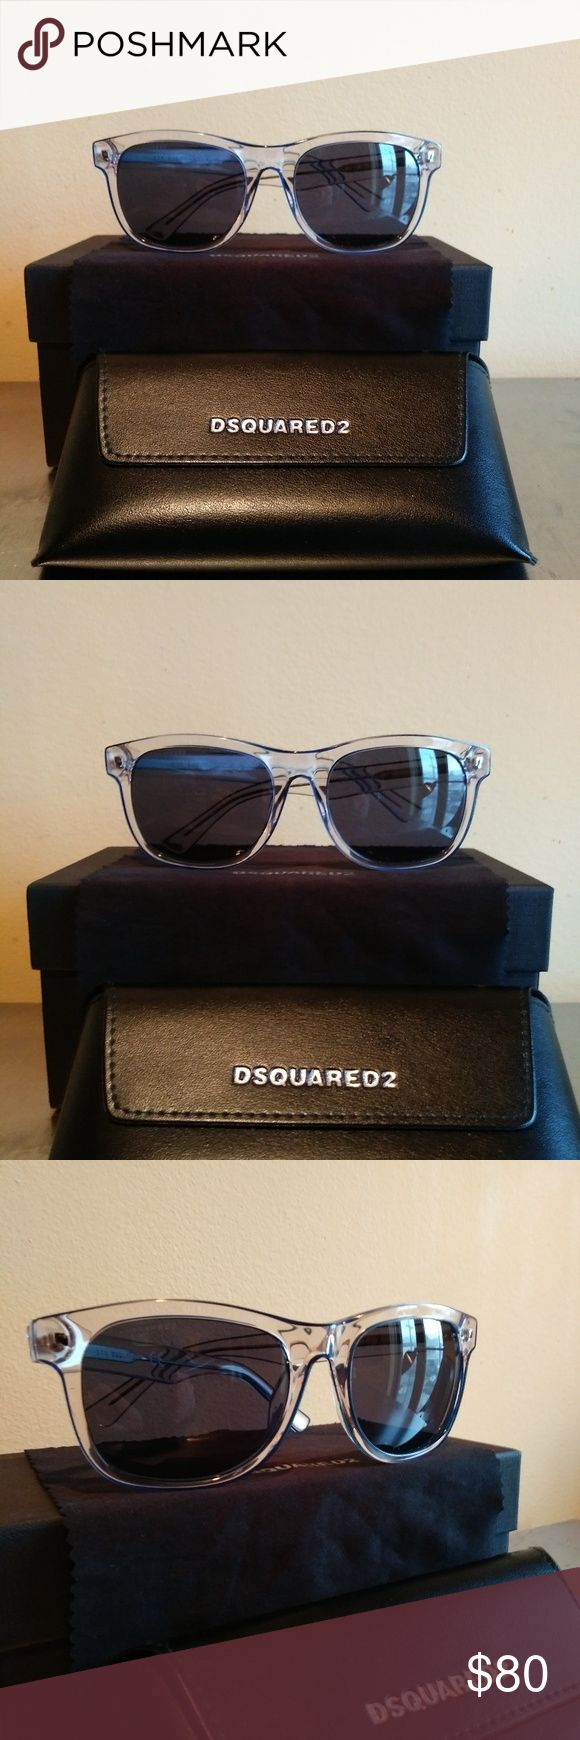 Dsquared Sunglasses Clear frame with scratch proof lense. Excellent next to new condition DSQUARED Accessories Sunglasses